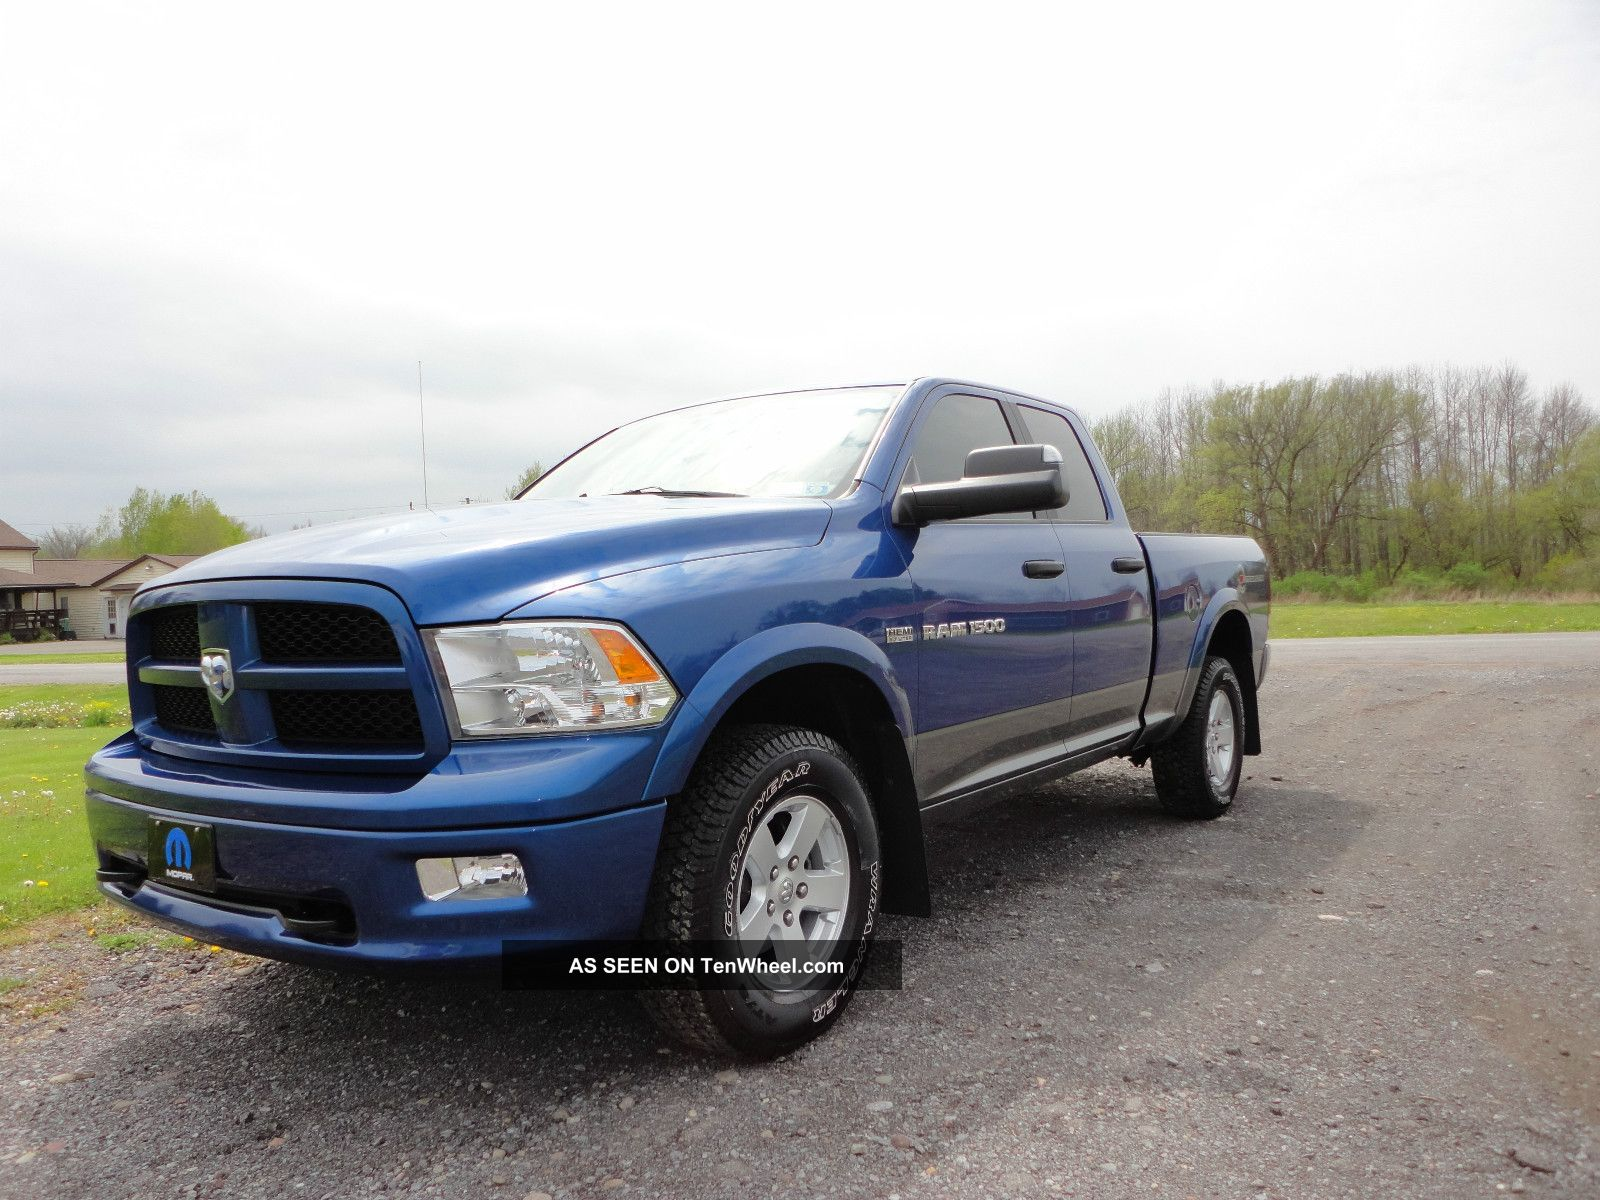 2011 dodge ram 1500 quad cab 4x4. Black Bedroom Furniture Sets. Home Design Ideas